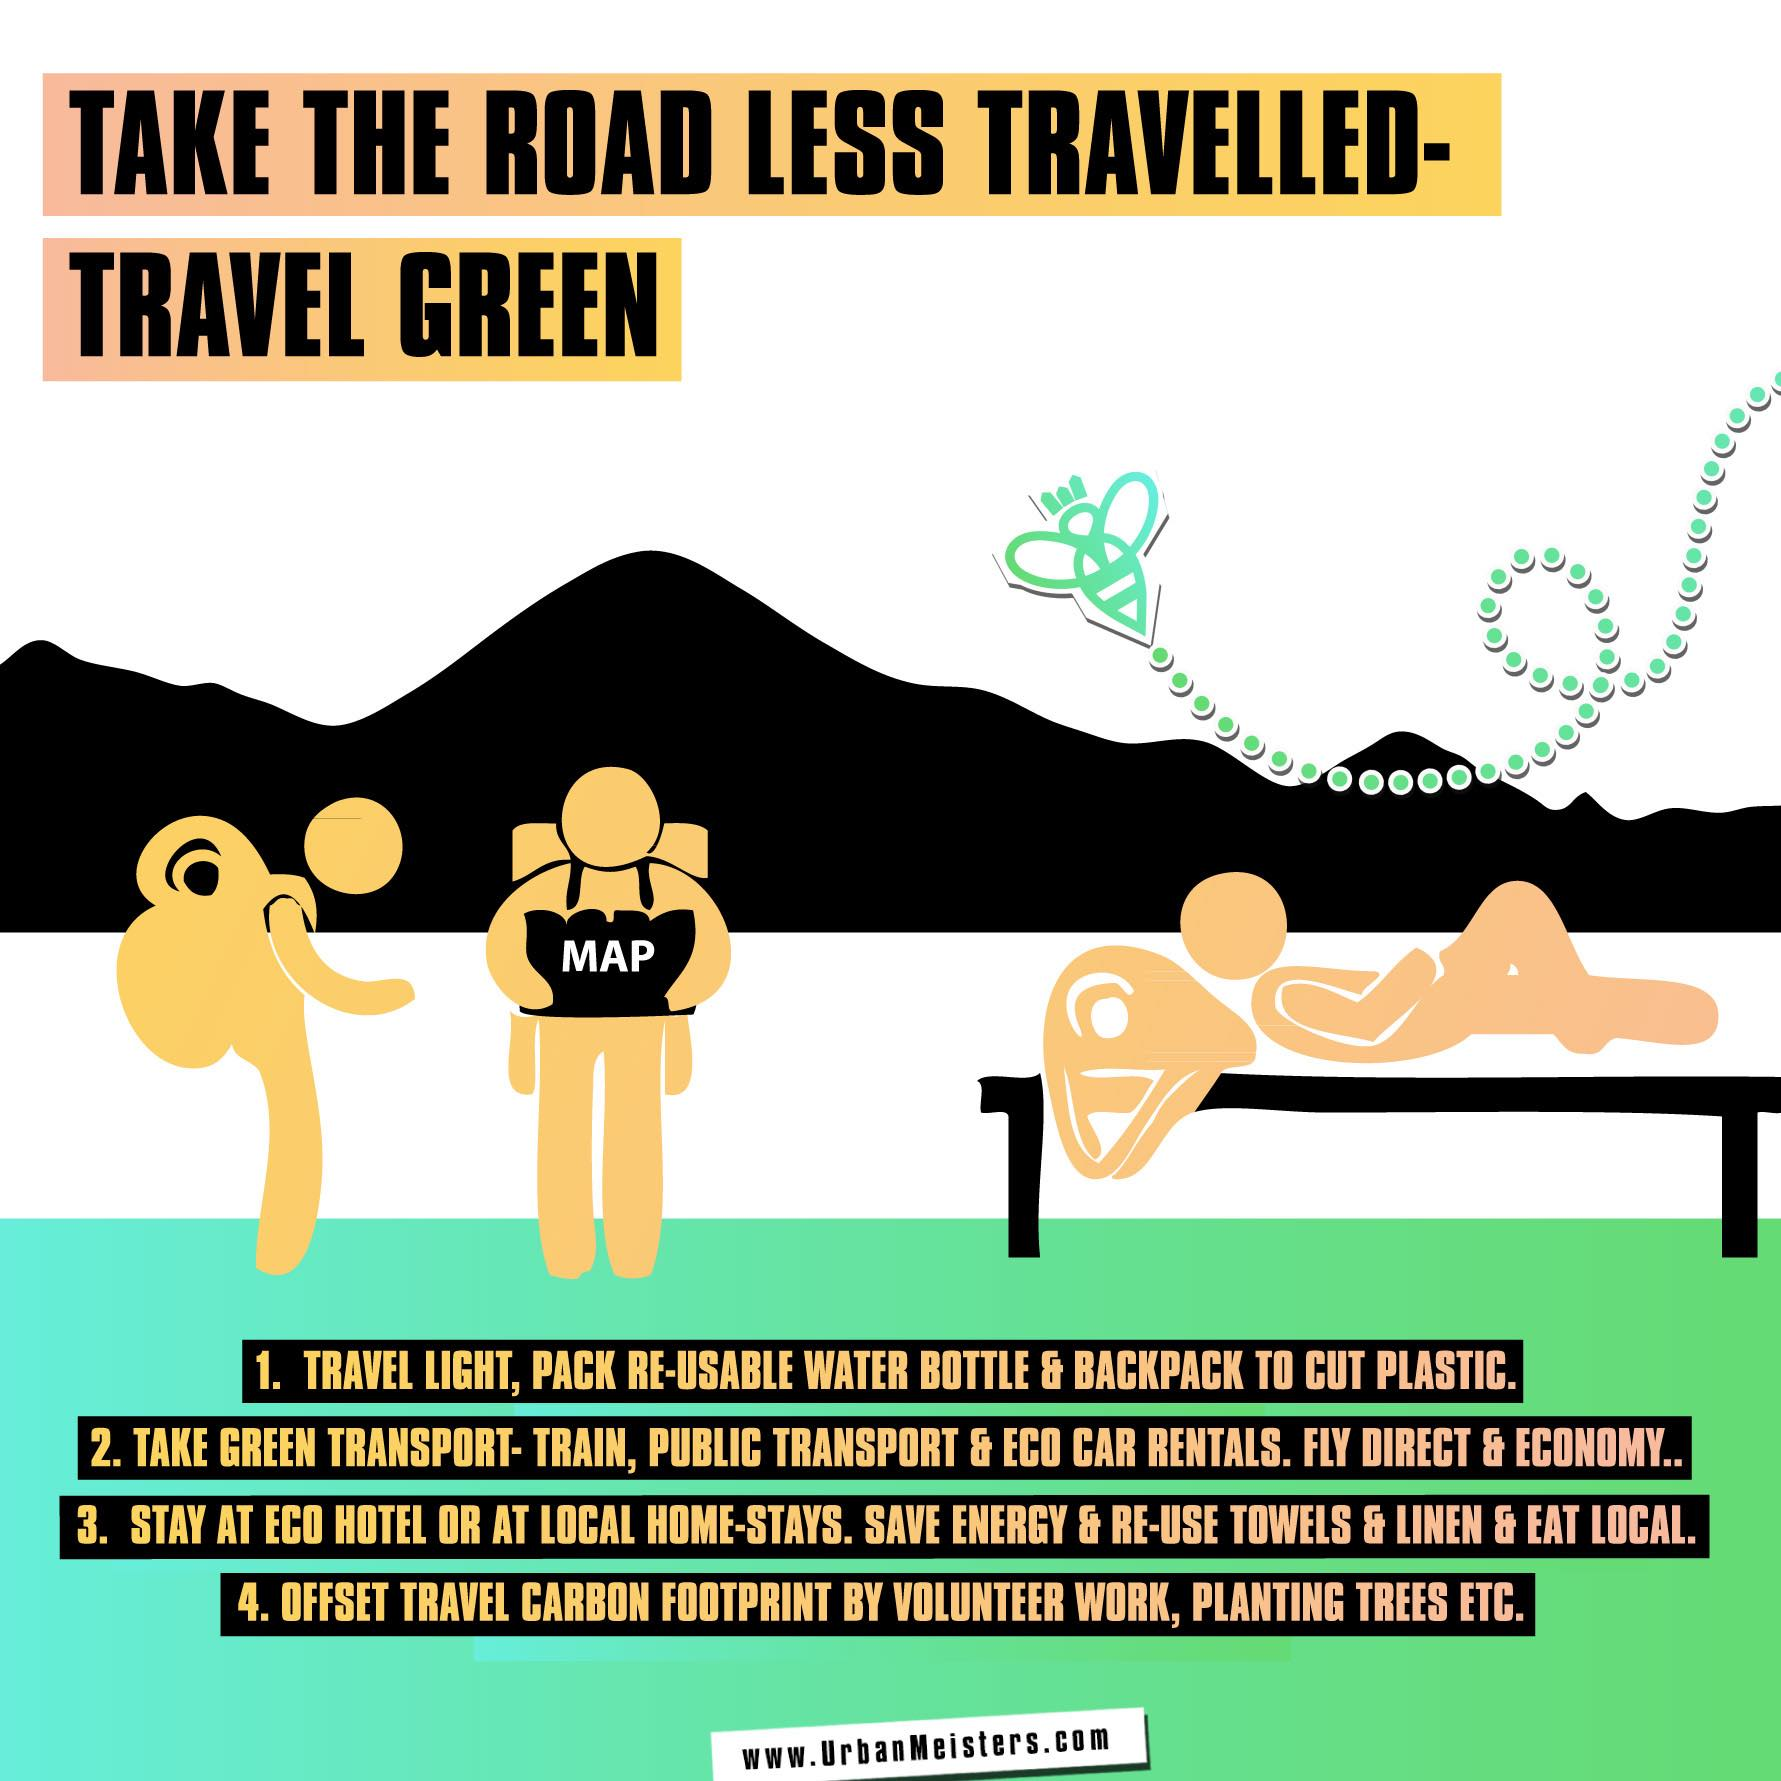 Travel Green tips